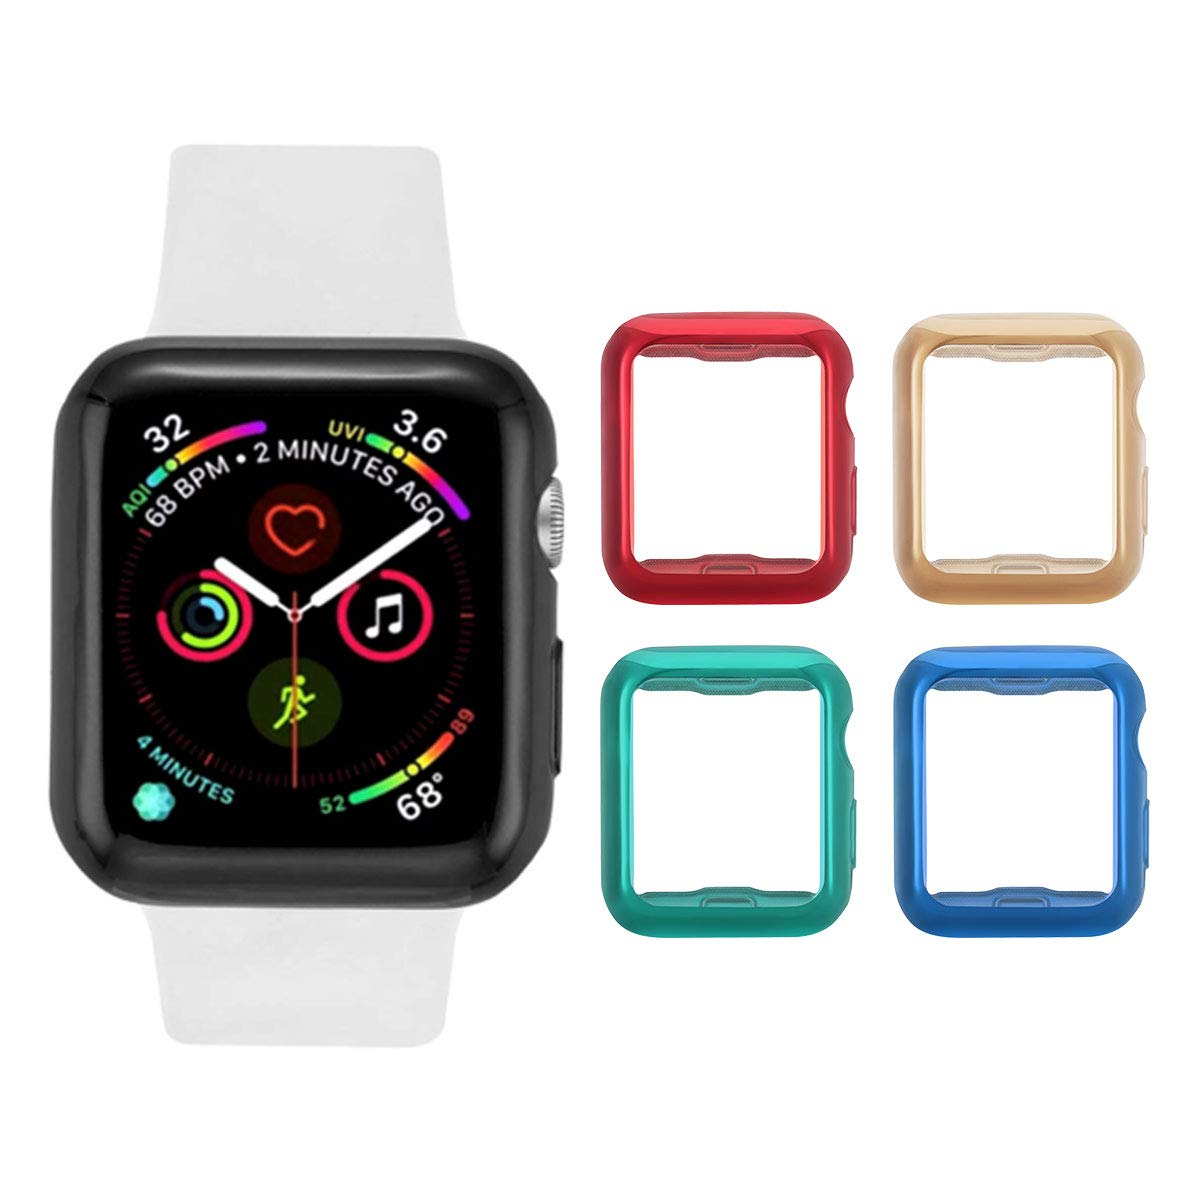 Tranesca Apple Watch case with Screen Protector for 38mm Apple Watch Series 2 and Apple Watch Series 3-4 Pack (Red+Gold+Green+Blue) by Tranesca